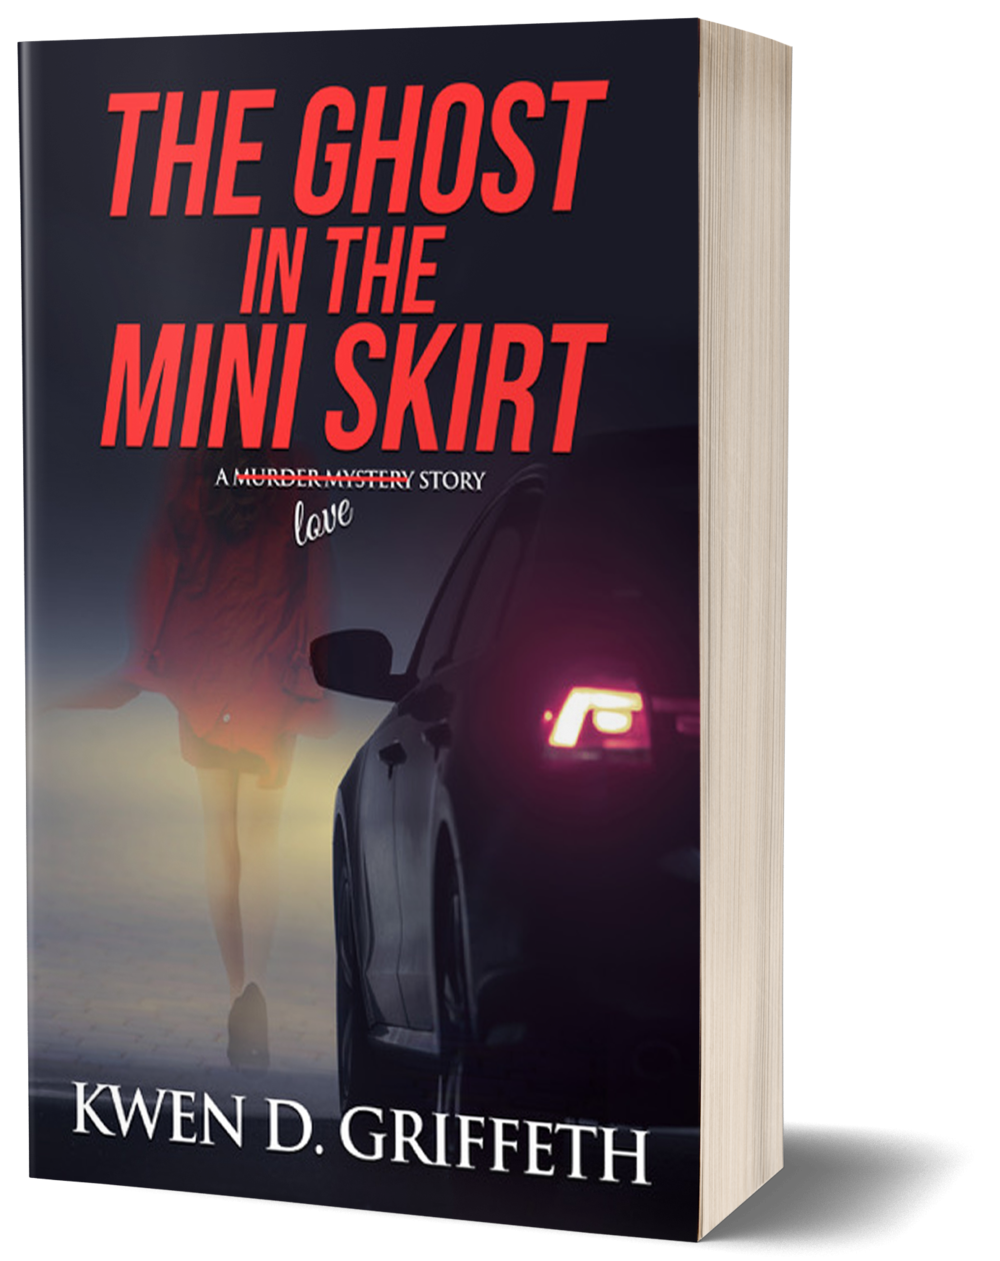 ghost in miniskirt book mockup.png